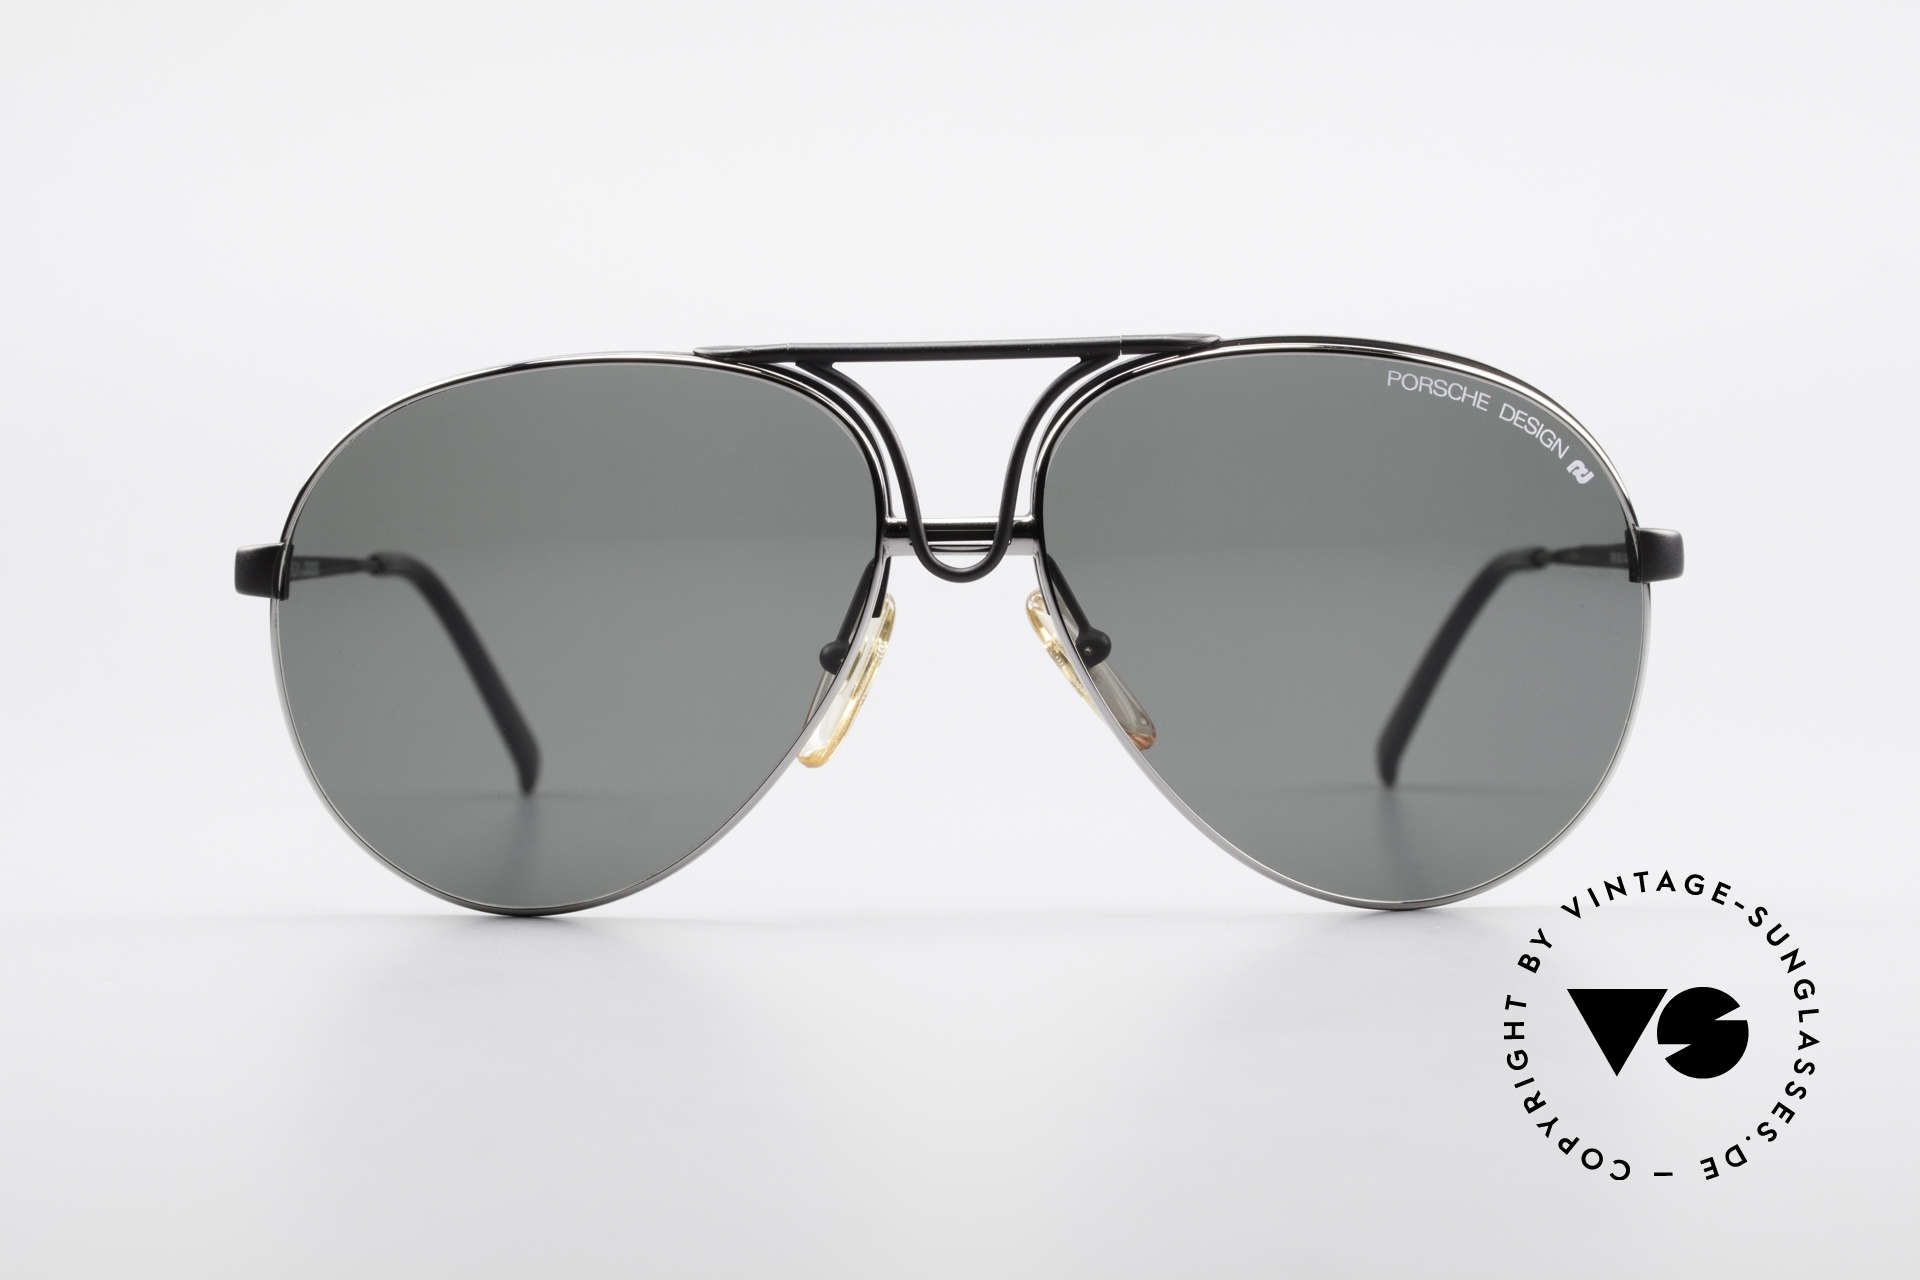 Porsche 5657 Interchangeable Sunglasses, frame with interchangeable front parts (lenses), Made for Men